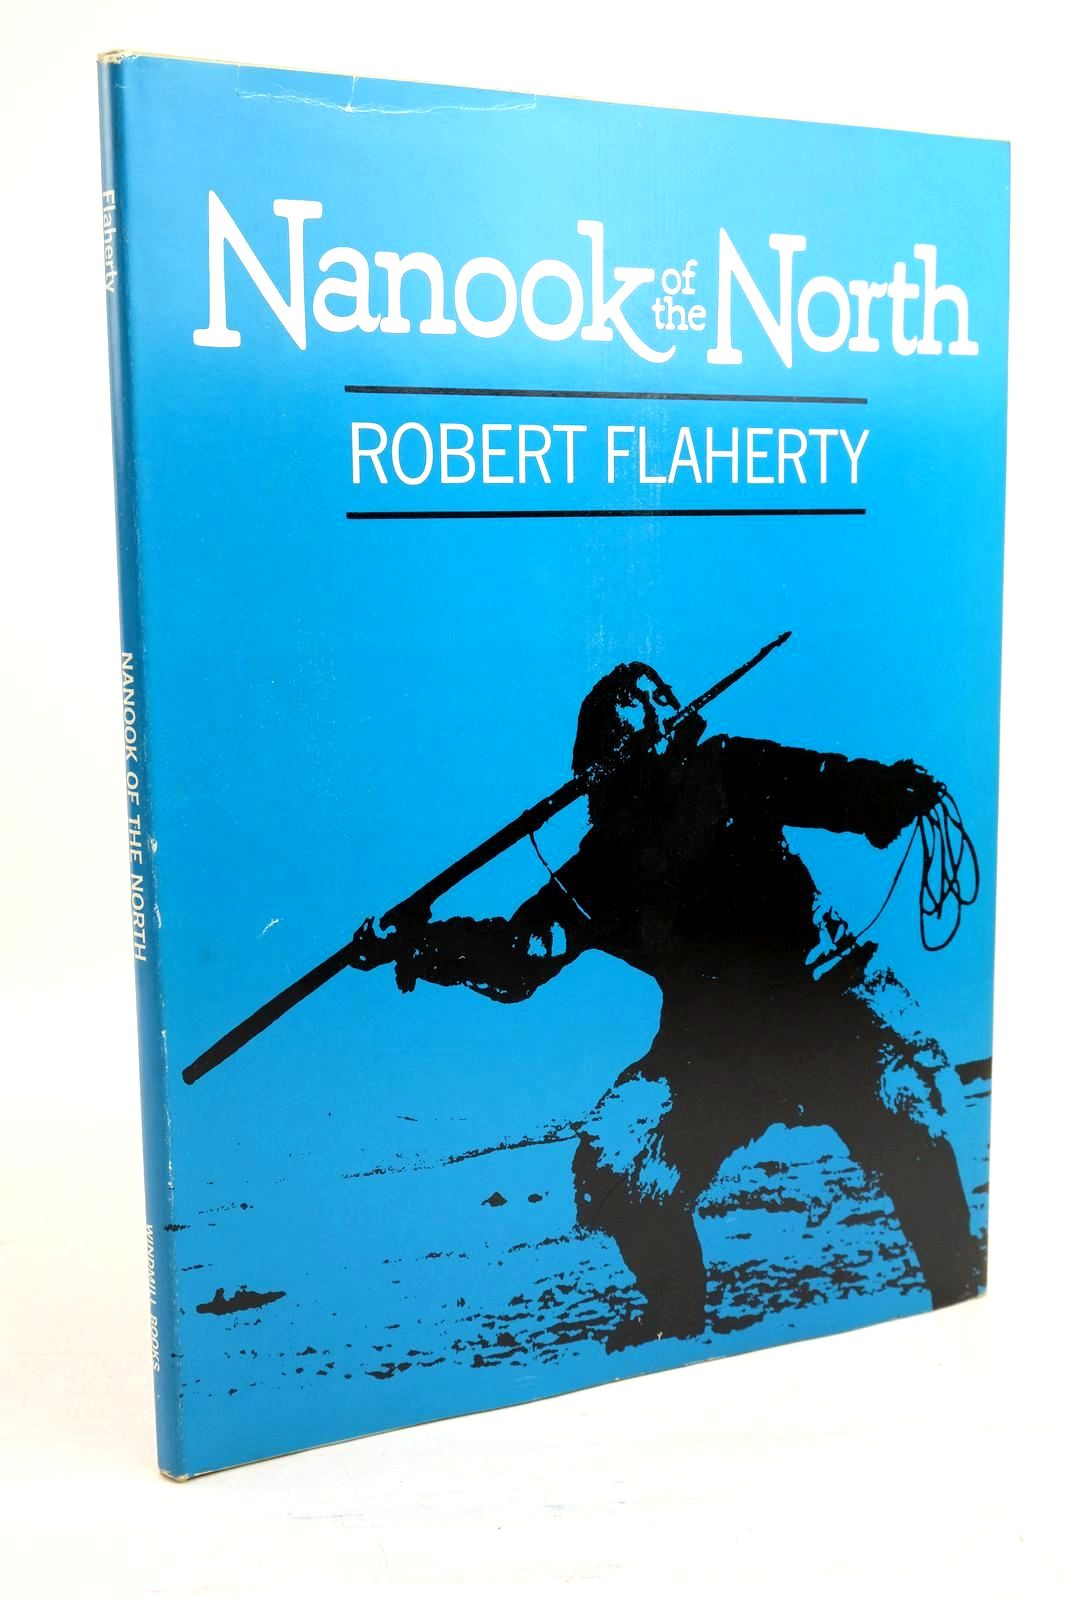 Photo of NANOOK OF THE NORTH- Stock Number: 1321112